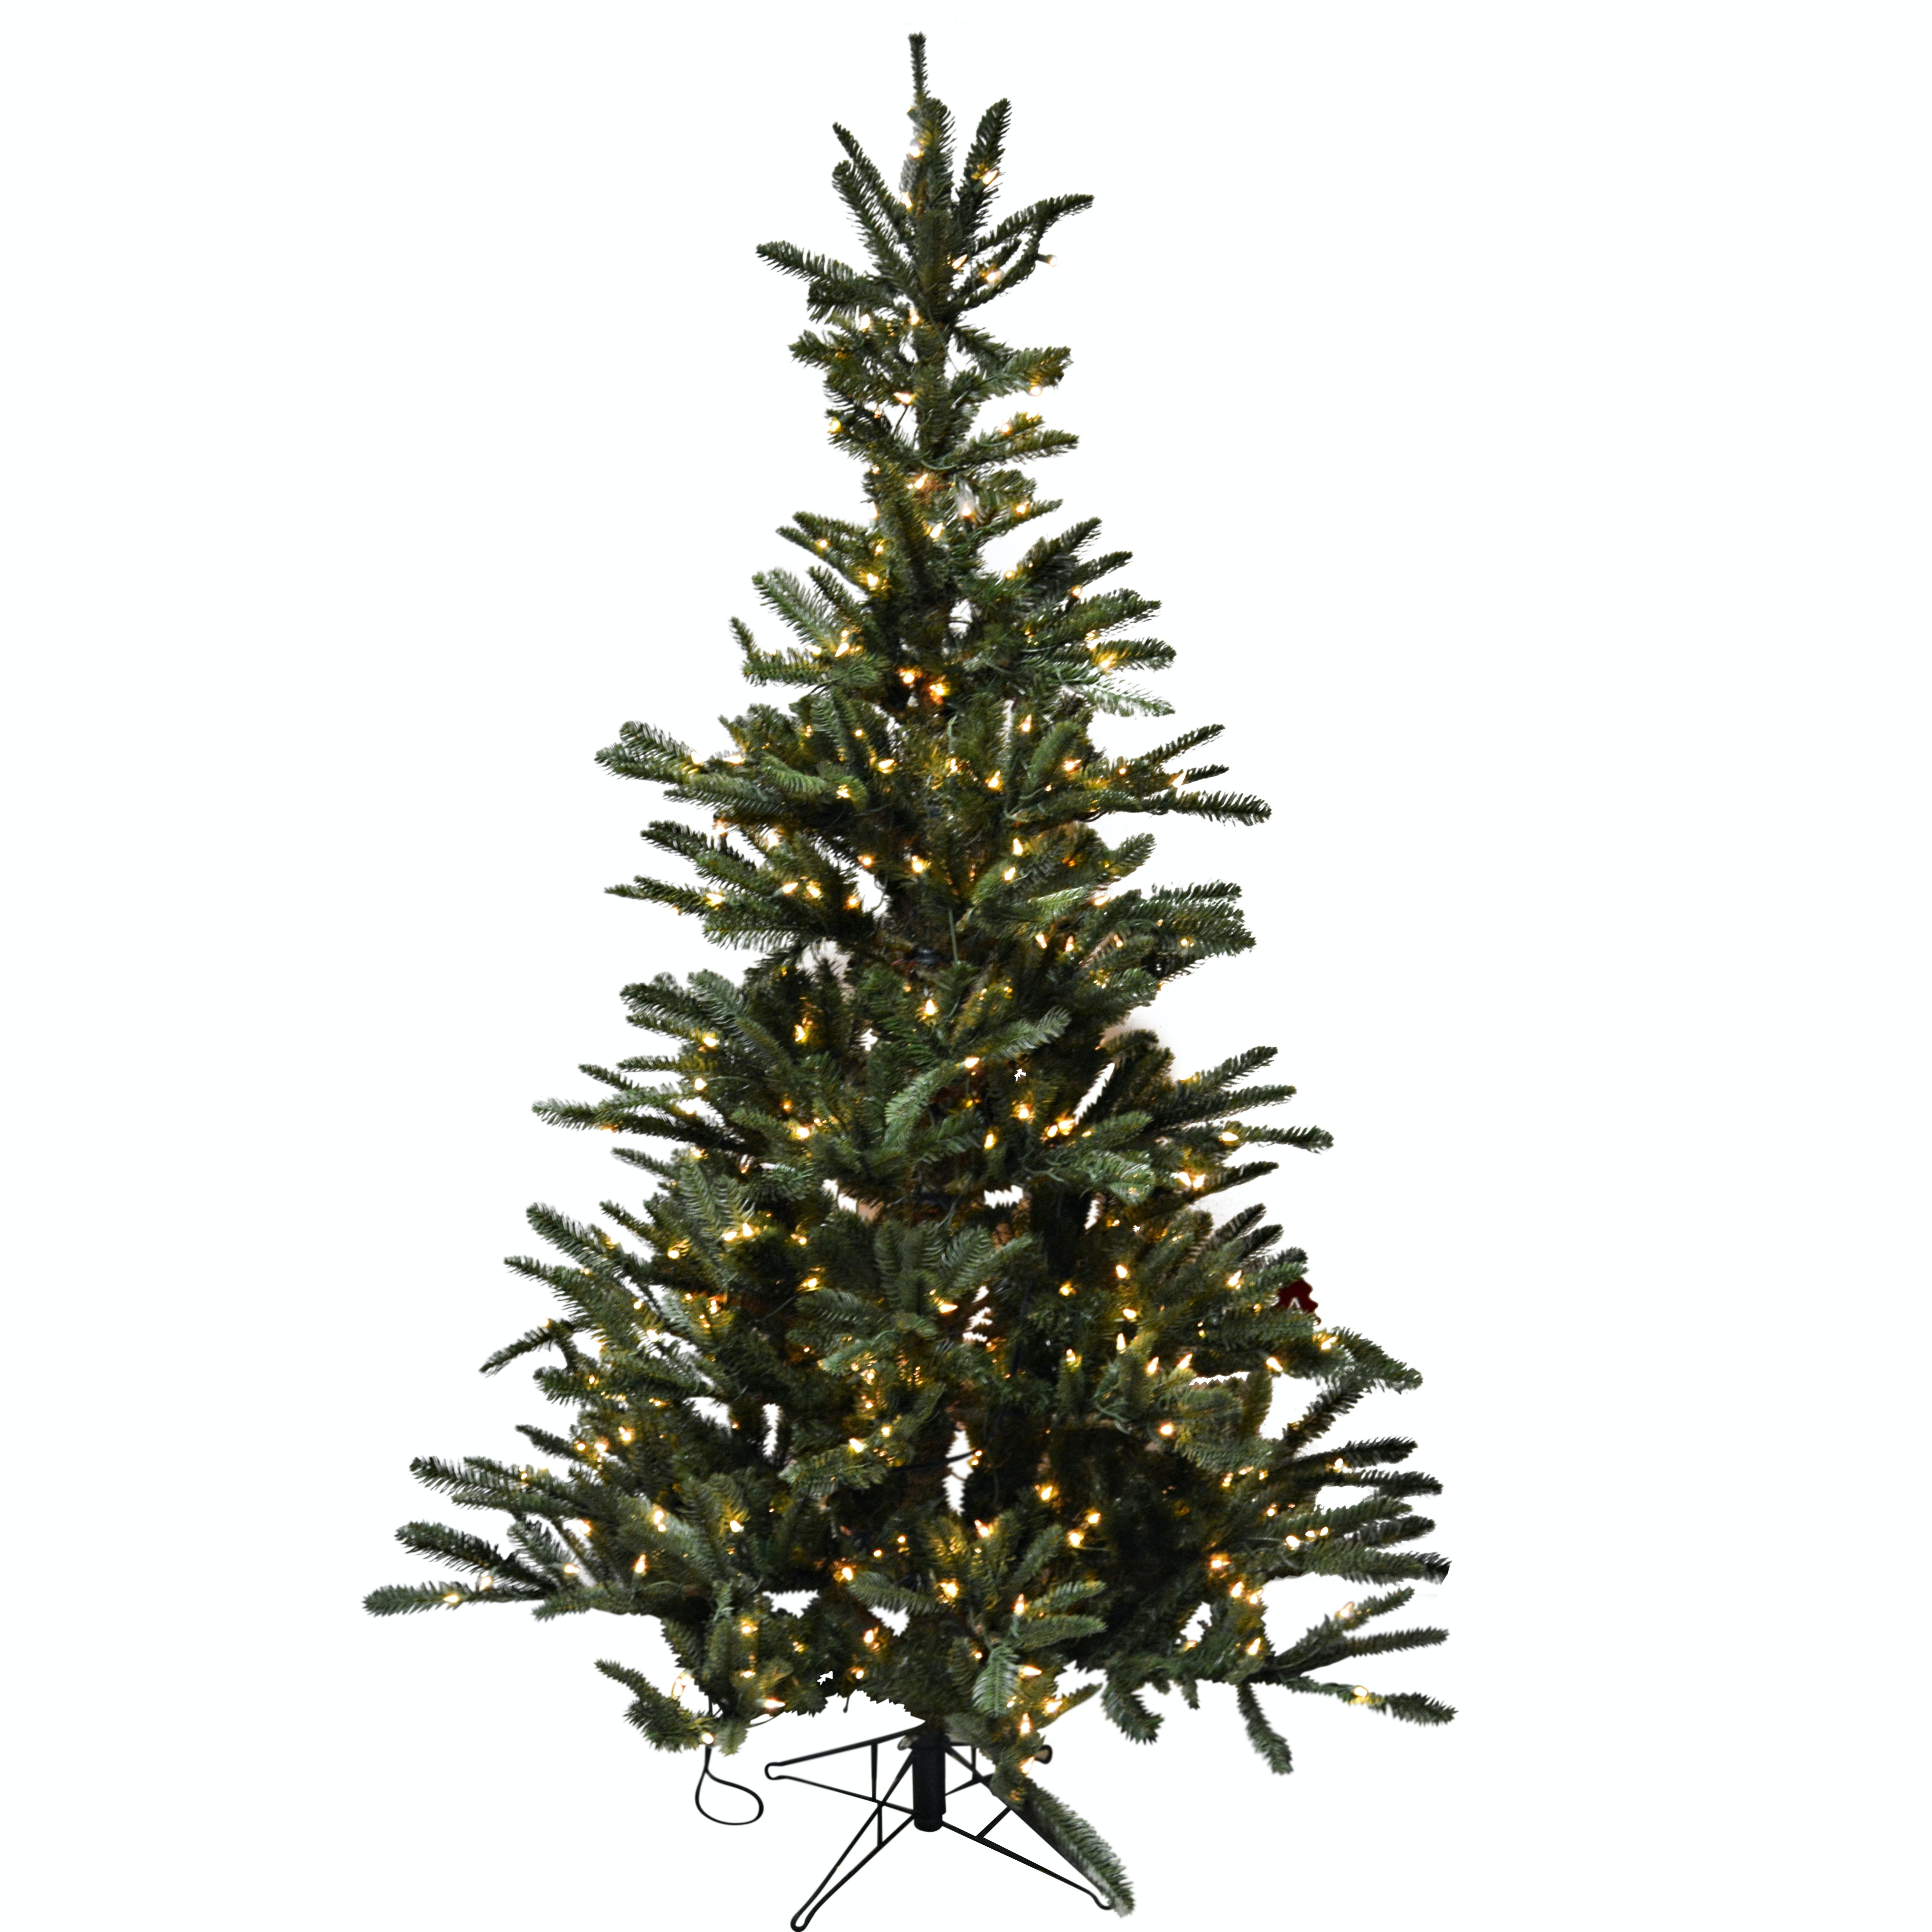 7' Illuminated Artificial Pine Christmas Tree and TreeKeeper Upright Storage Bag